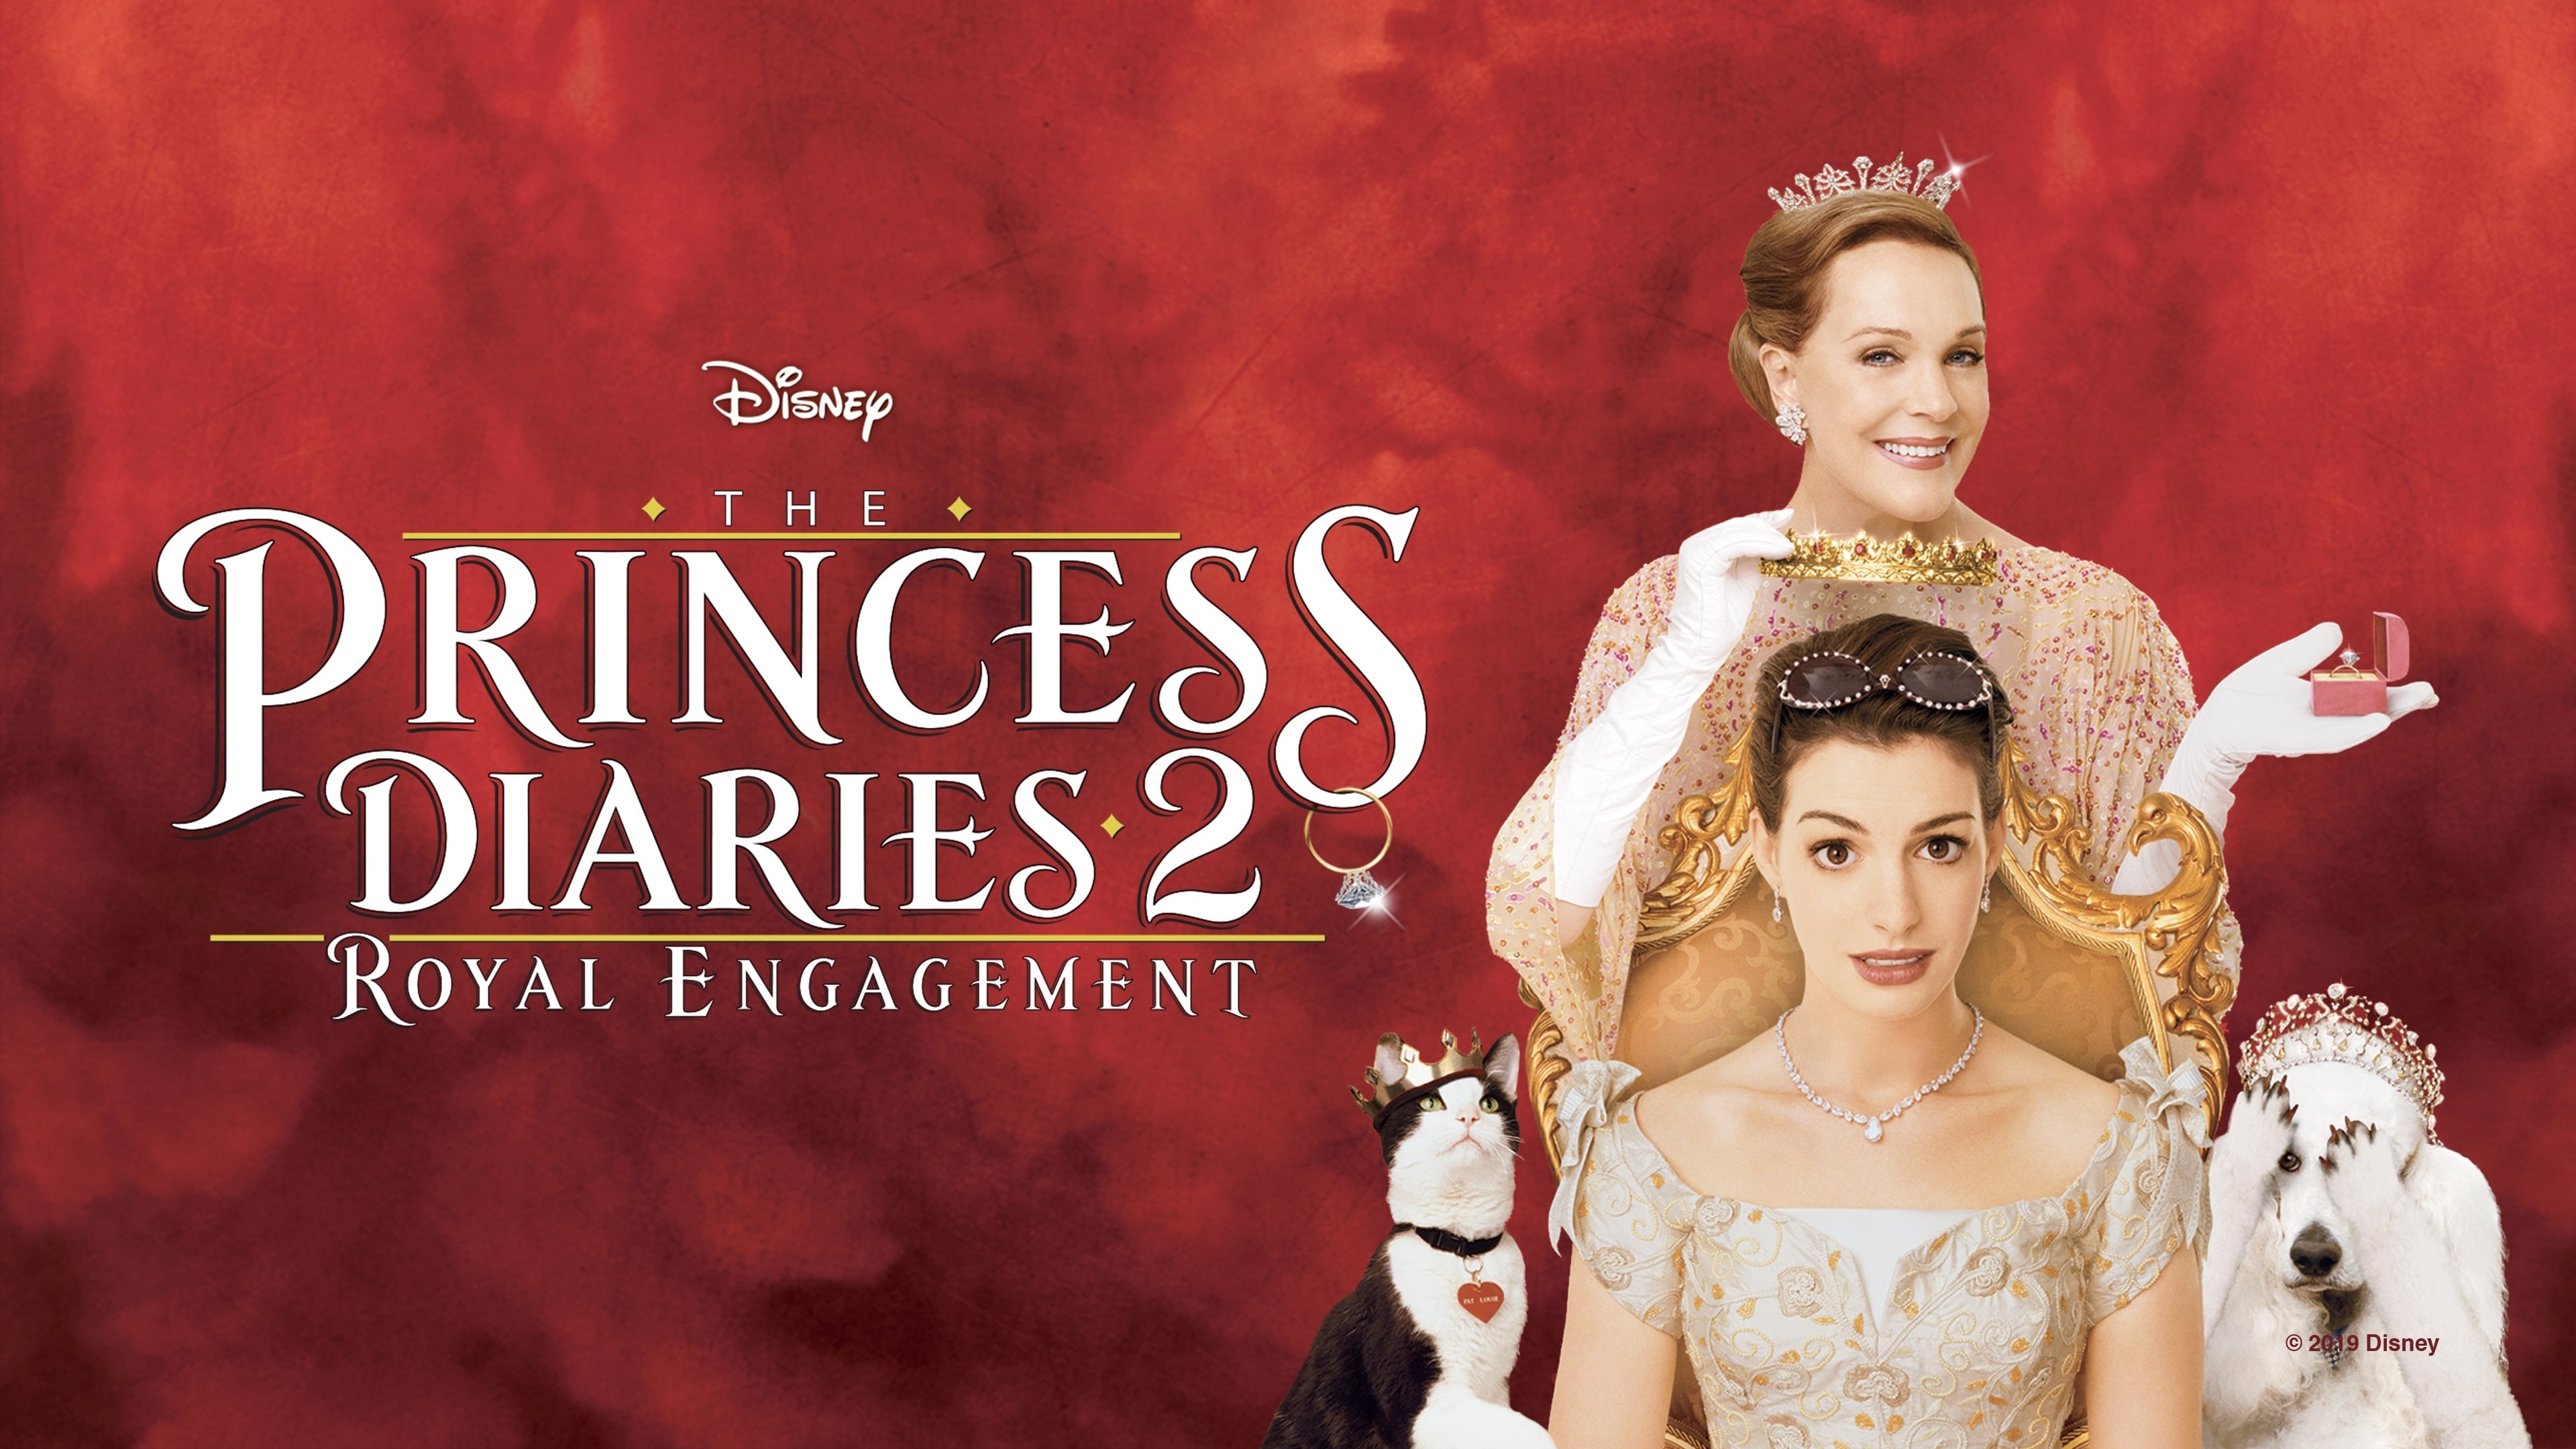 The Princess Diaries 2: Royal Engagement Trailer